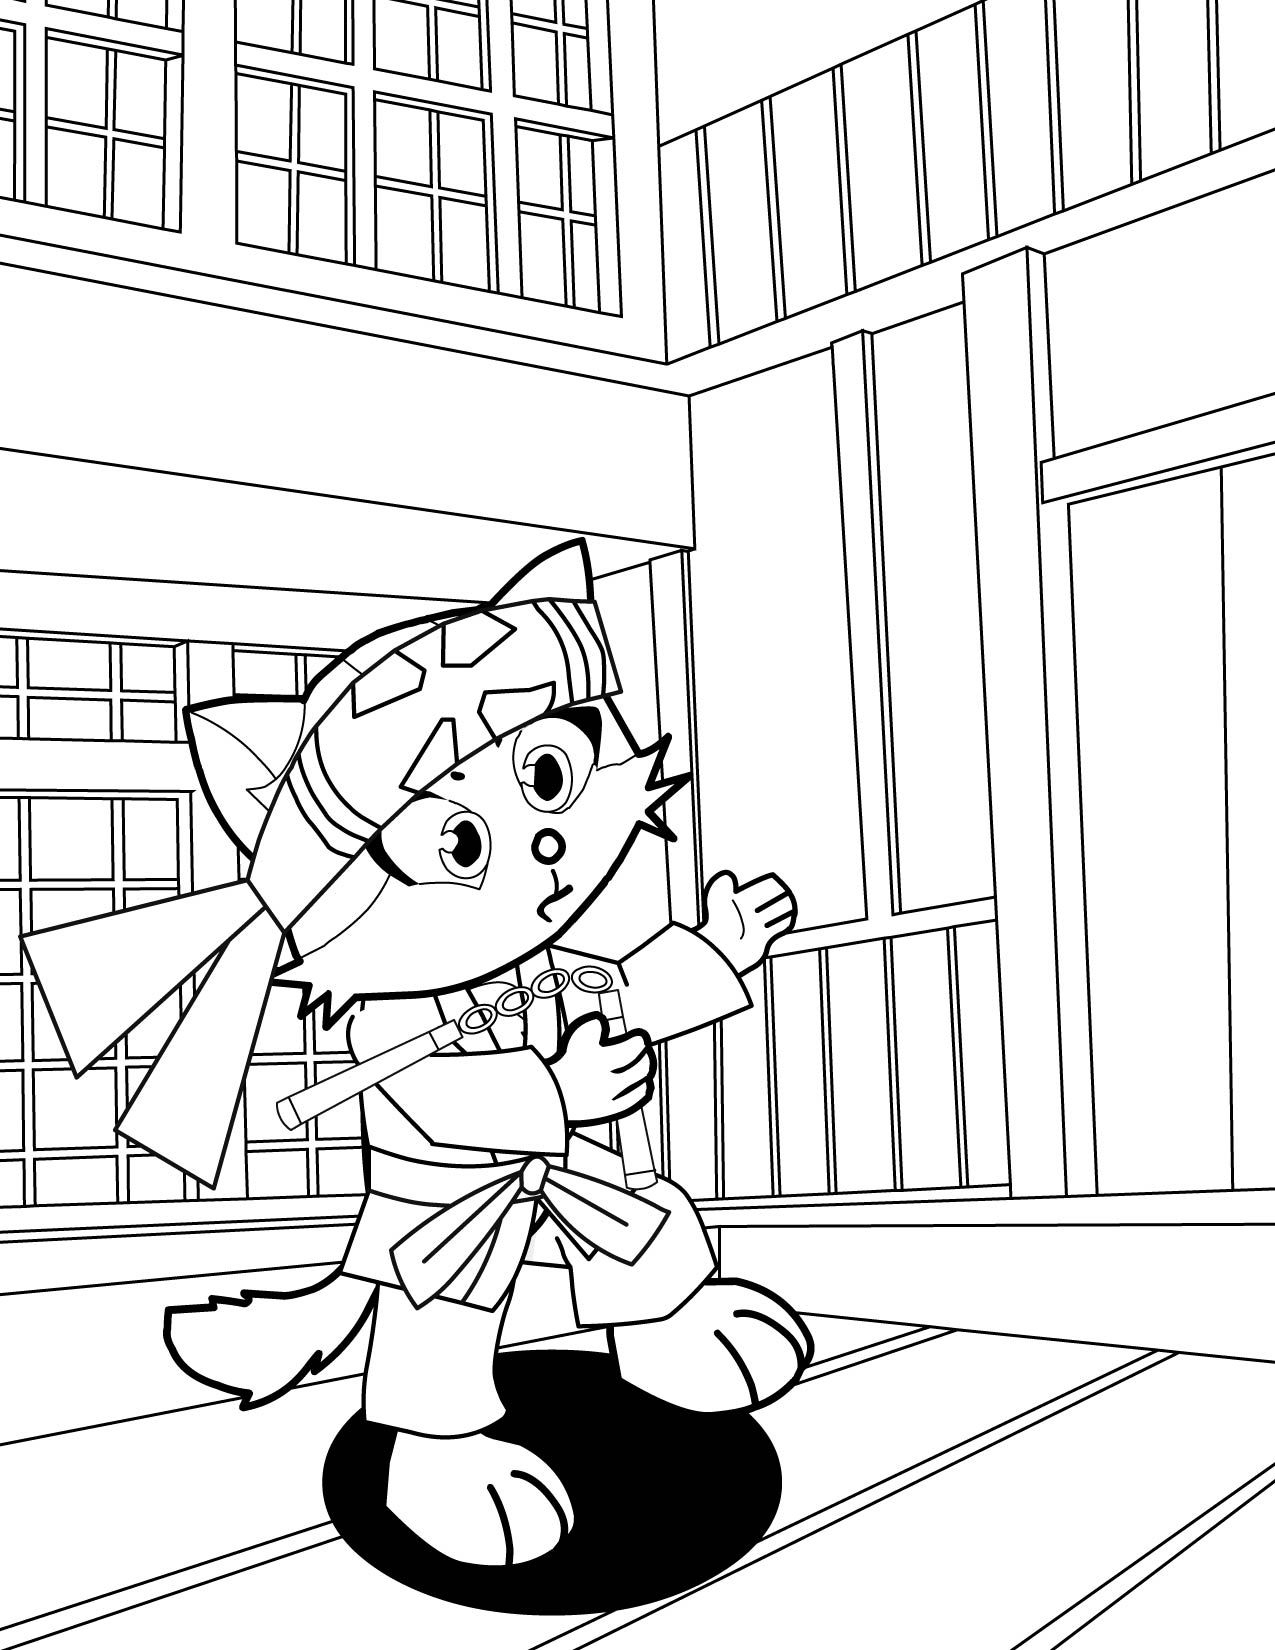 Karate Coloring Pages Free #15556 - Free Printable Karate Coloring Pages